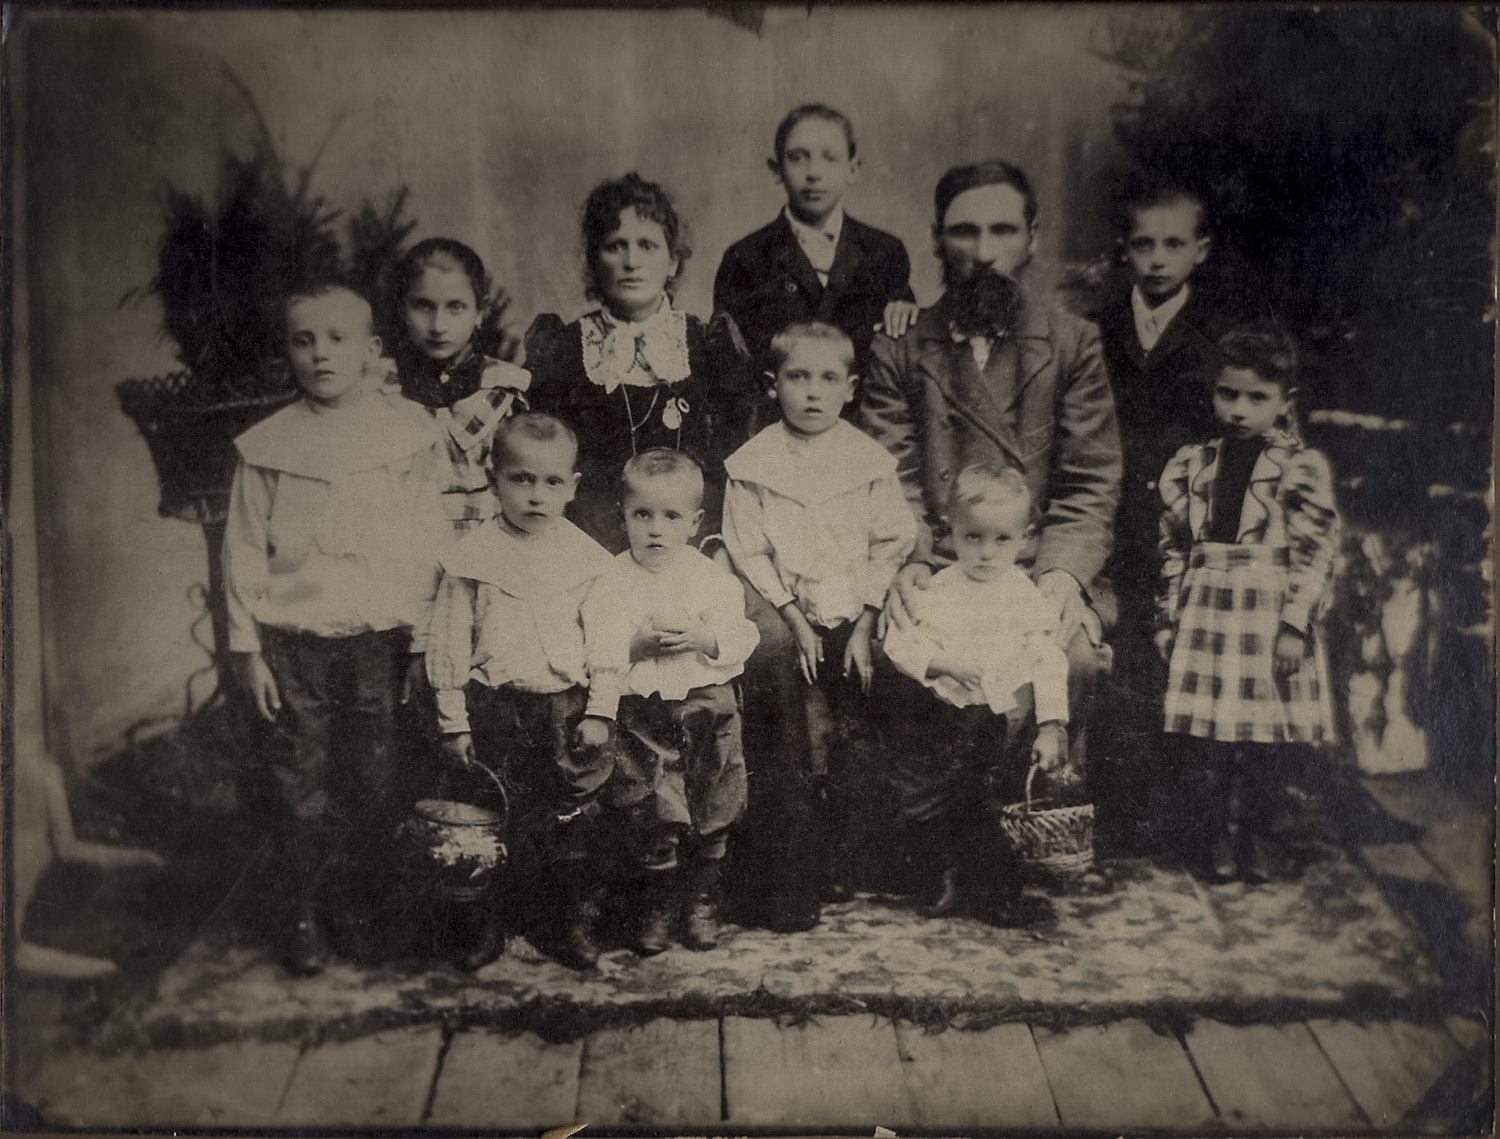 My great grandparents, Zoruch and Grunya with their family. My grandfather, Max, is the first on the left. - Keidan, circa 1902